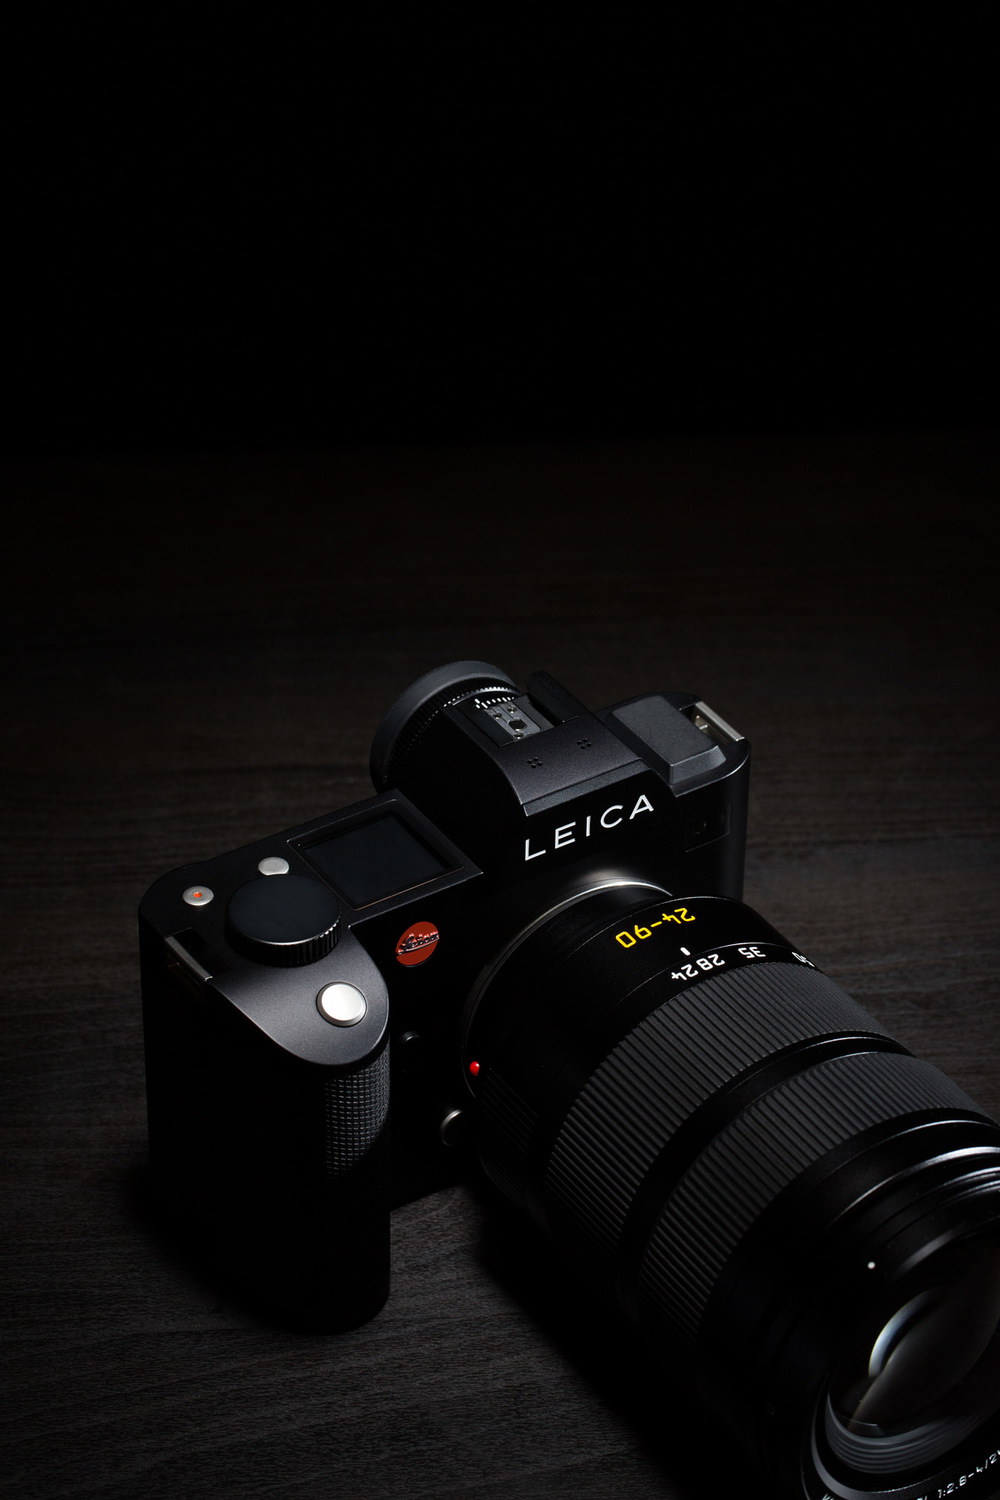 Product-Photography-17.JPG